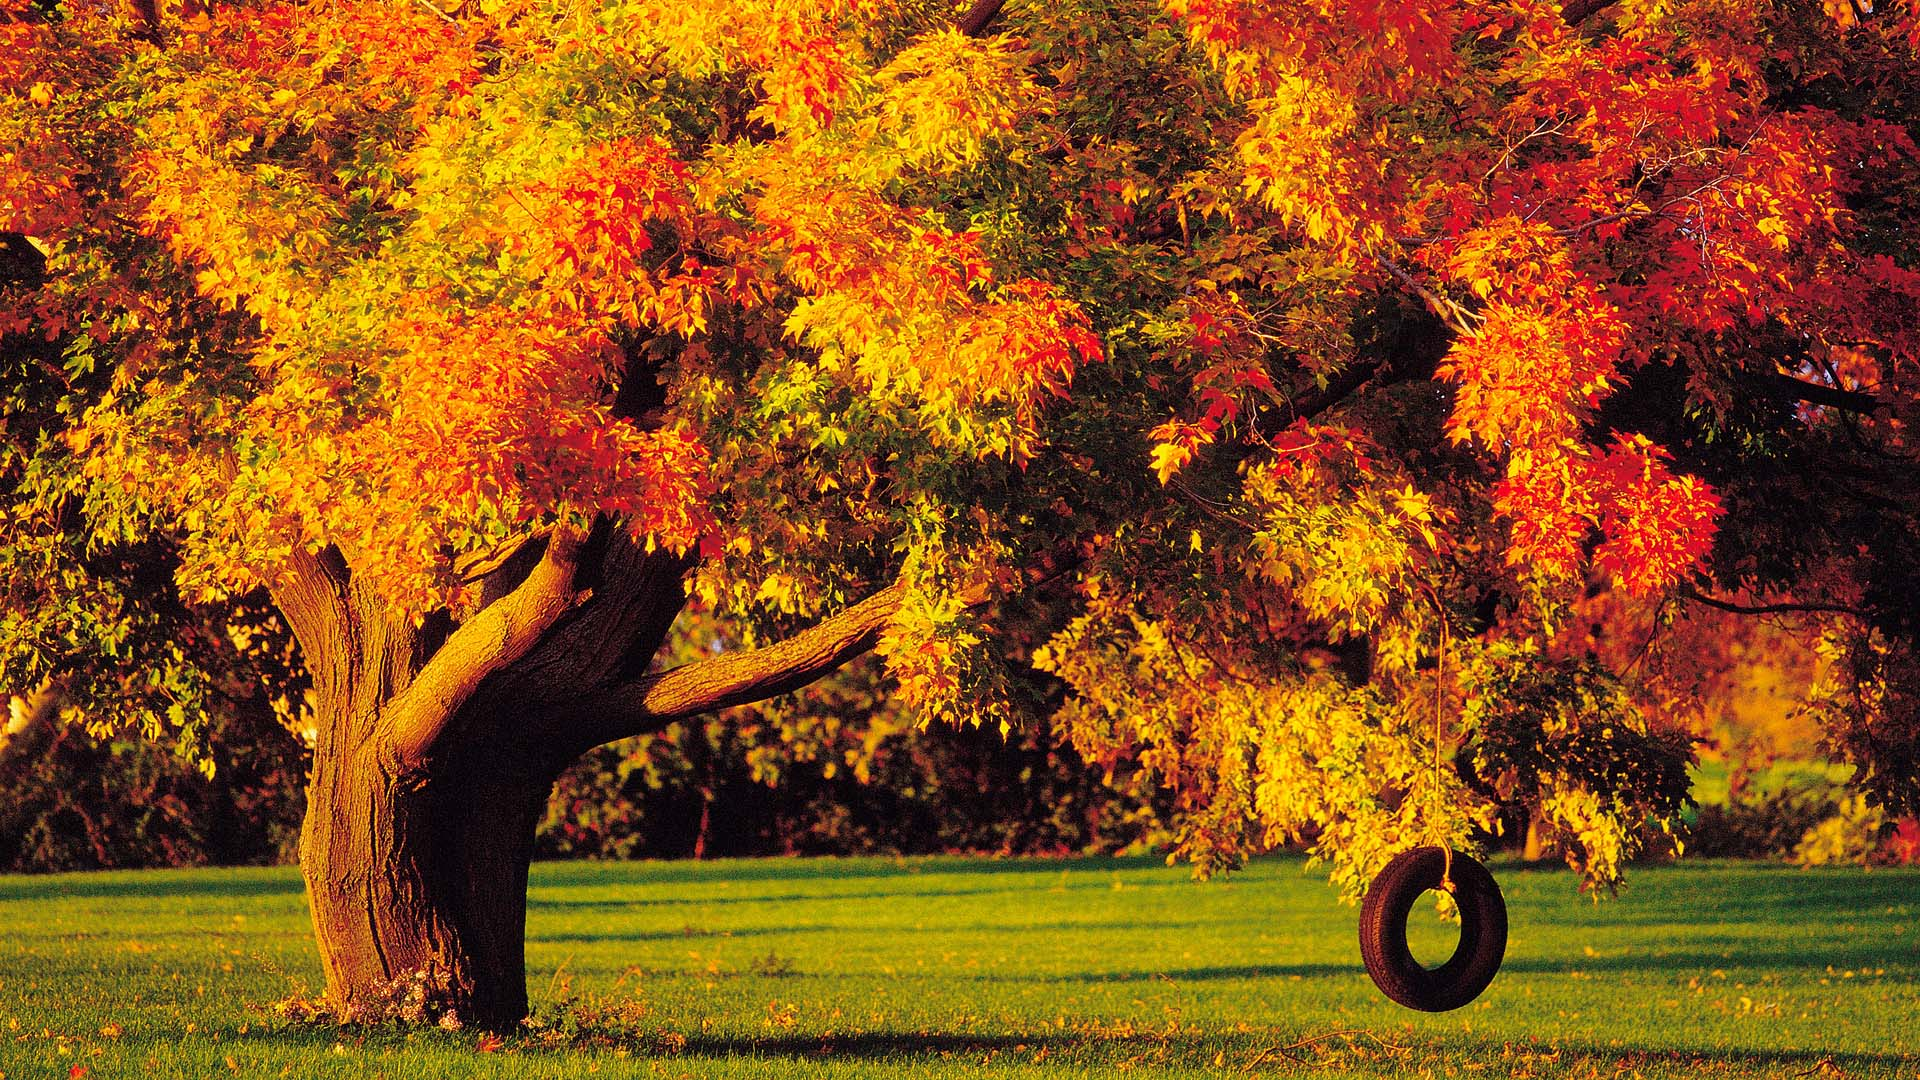 Autumn Tree Wallpaper 61 Images: Fall Trees Wallpaper